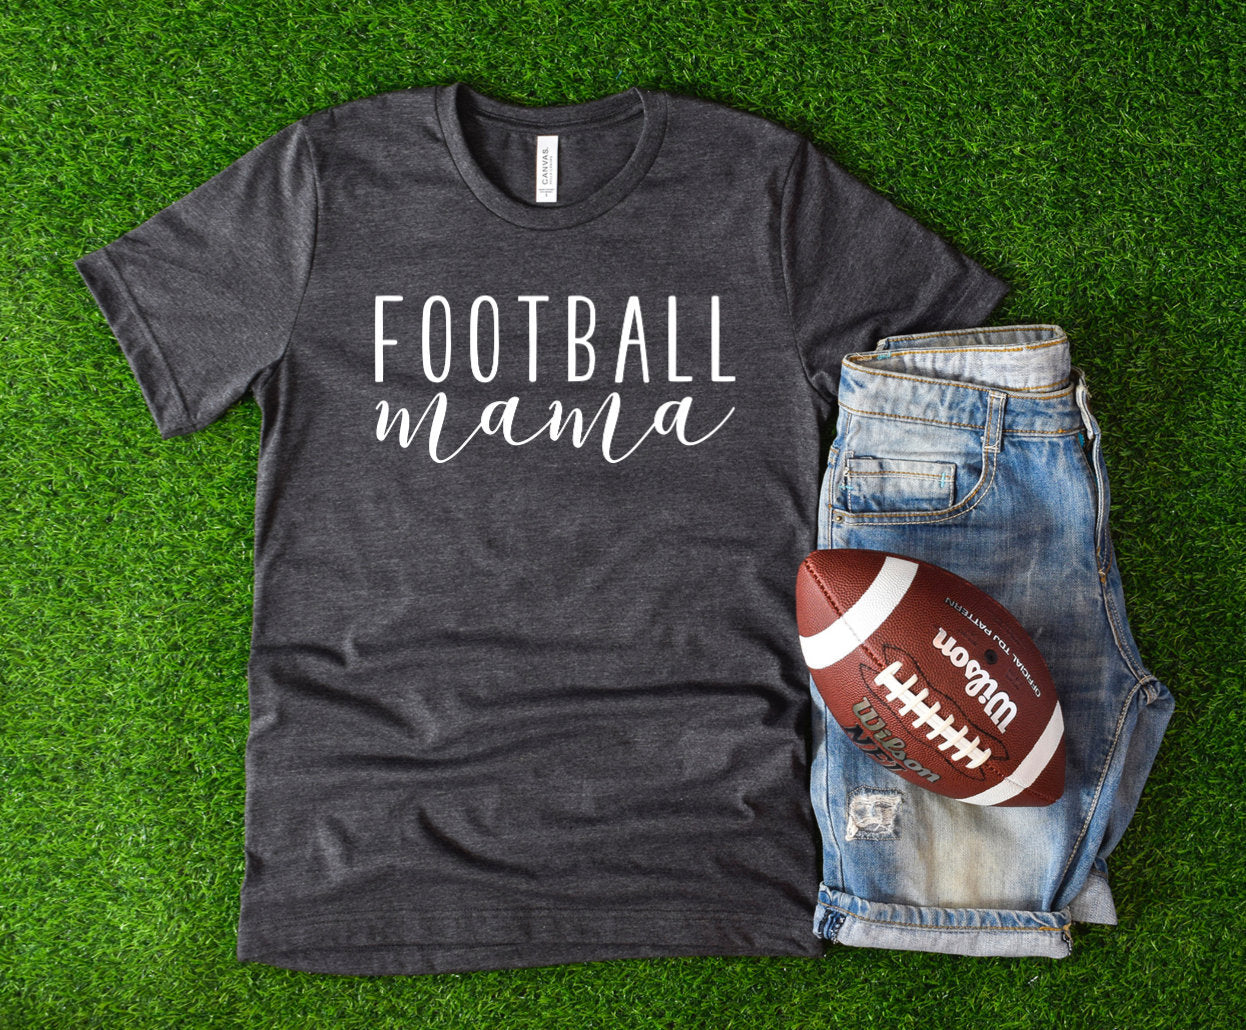 Football Mama T-Shirt - Football Shirts - Football Family Shirts - Sports Mom Shirt - Gift for Mom